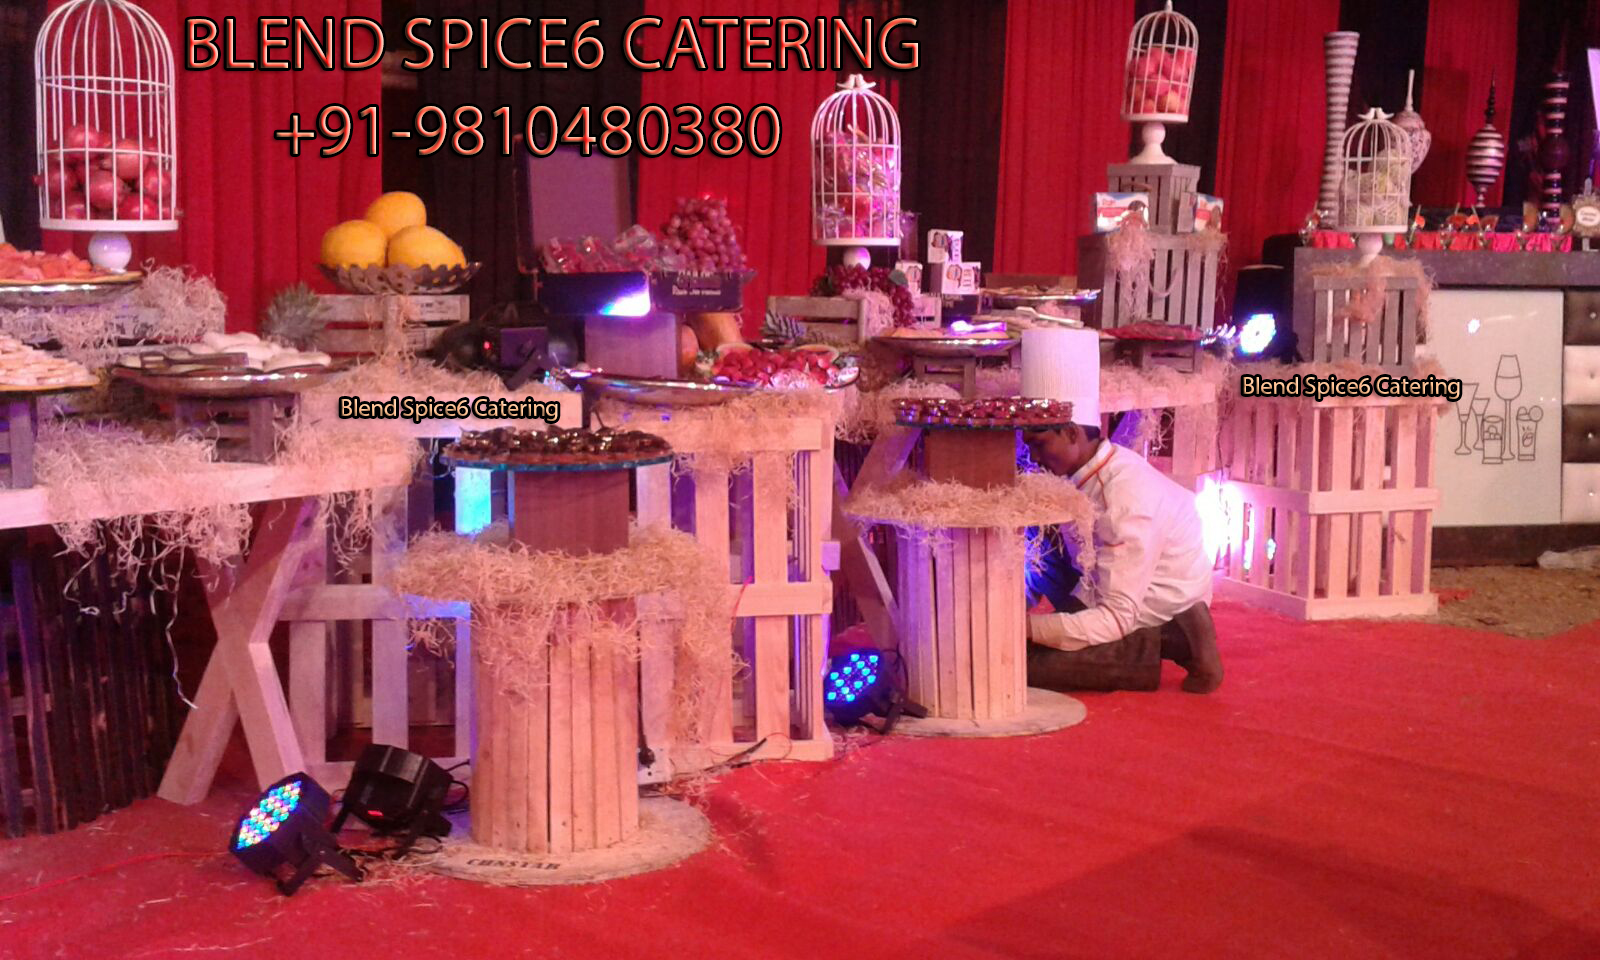 corporate event party caterer services